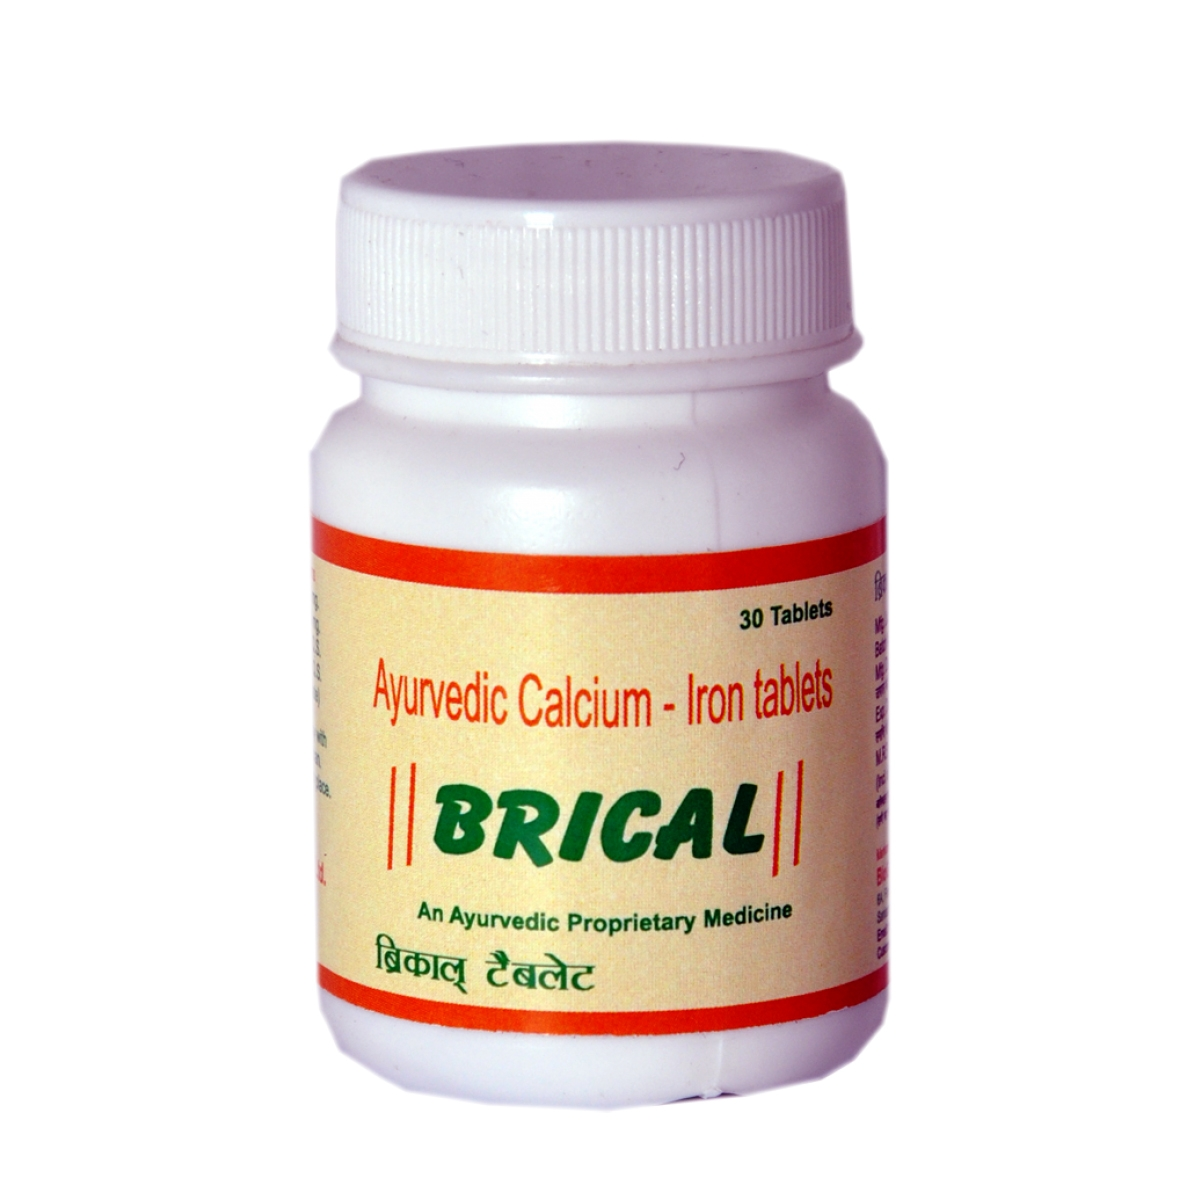 Brical Tablets In Visakhapatnam